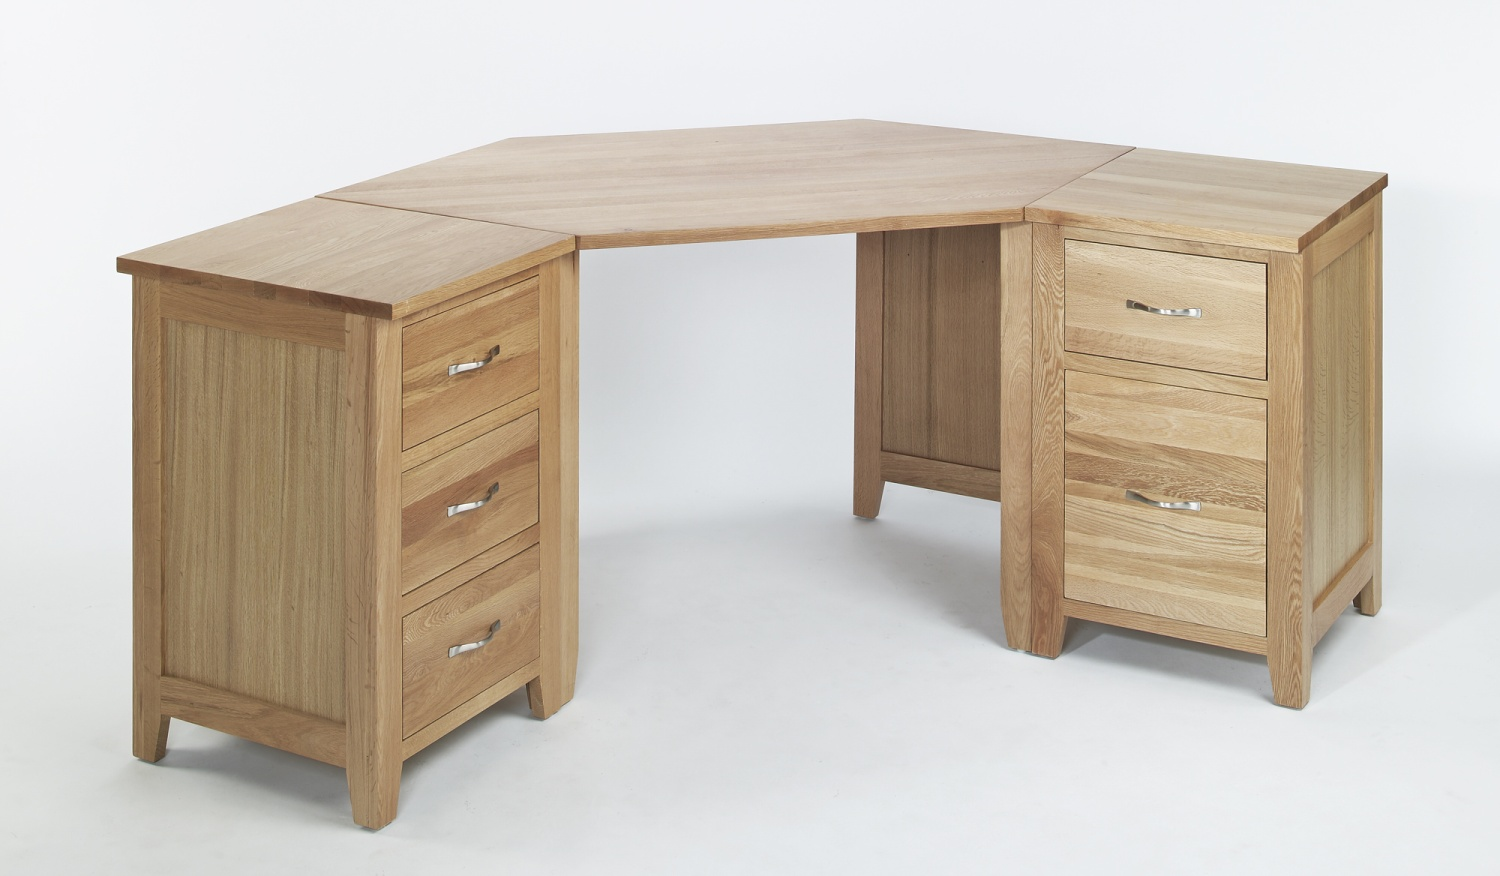 compton solid oak furniture corner office pc computer desk ebay. Black Bedroom Furniture Sets. Home Design Ideas